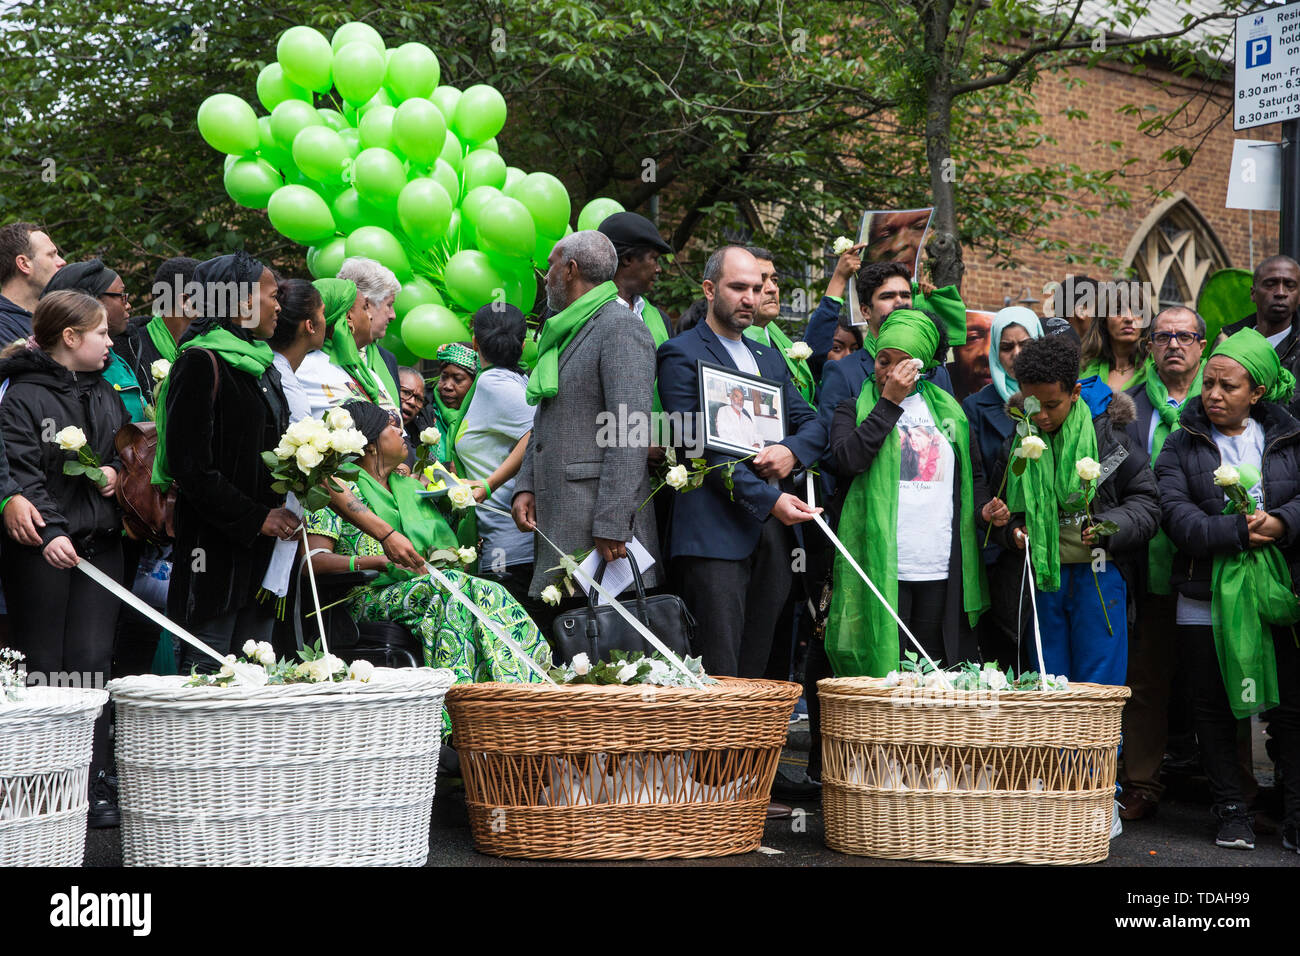 London, UK. 14 June, 2019. Family members prepare to release doves of peace following a memorial service at St Helen's Church to mark the second anniversary of the Grenfell Tower fire on 14th June 2017 in which at least 72 people died and over 70 were injured. Credit: Mark Kerrison/Alamy Live News - Stock Image